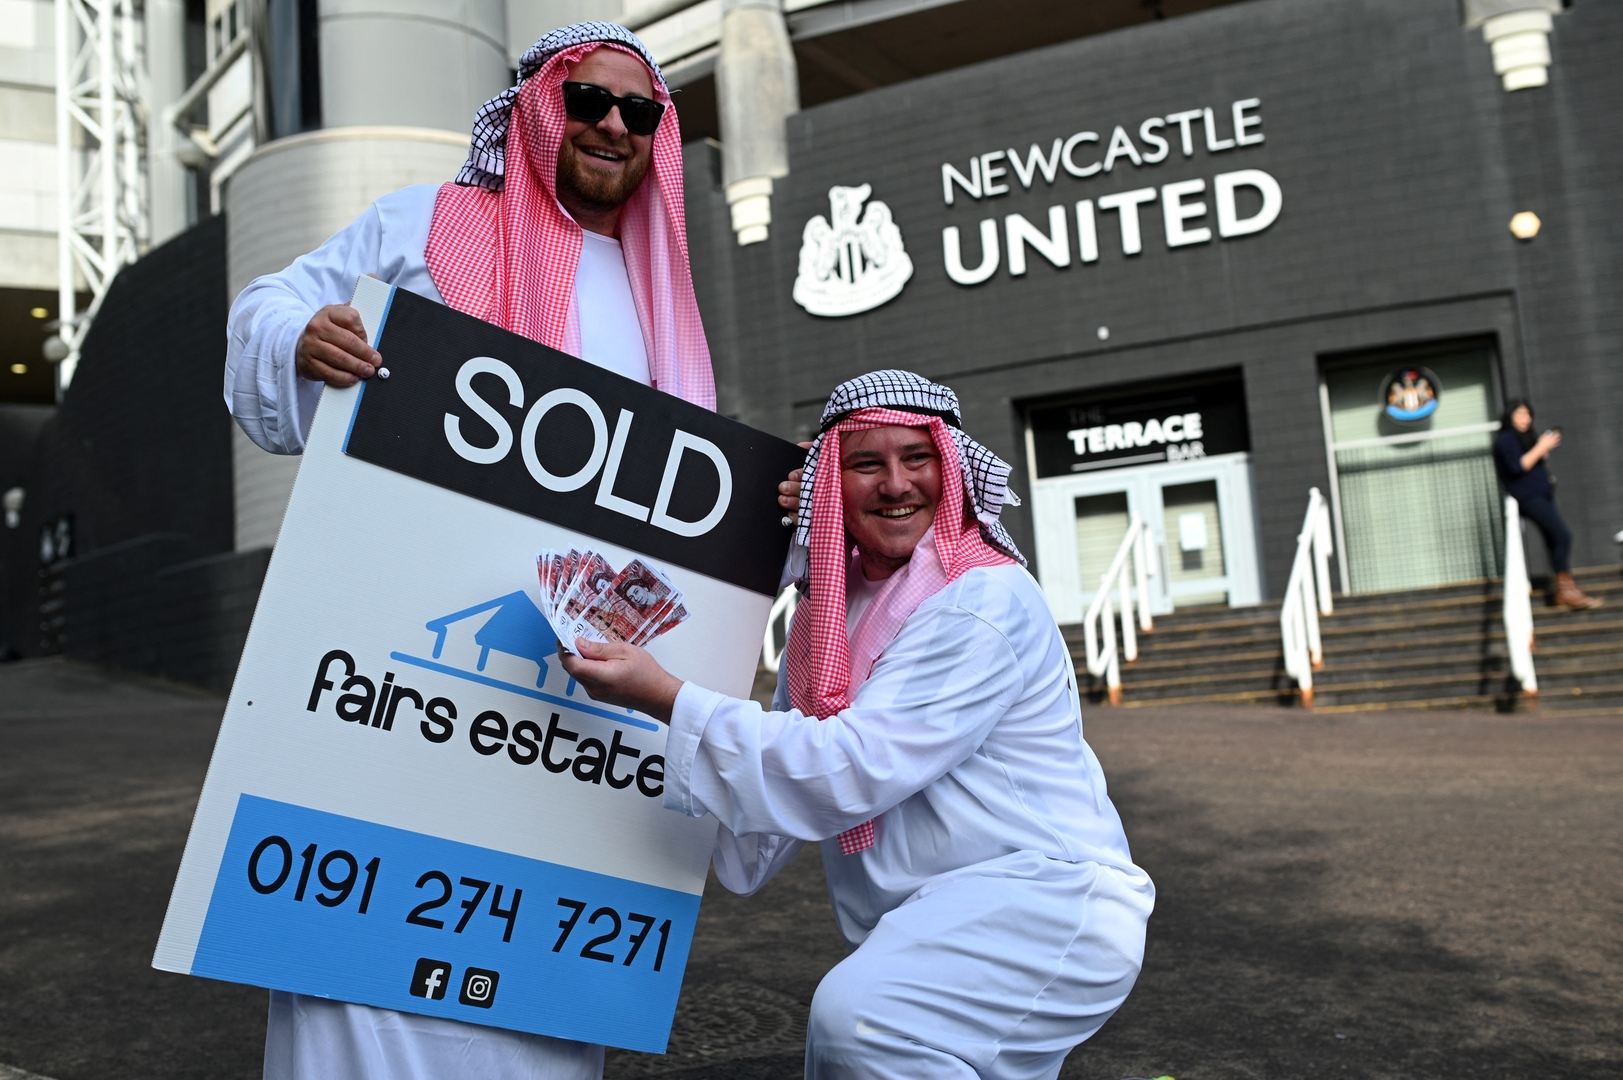 Angry Premier League clubs call for an emergency meeting after Saudi Arabia's takeover of Newcastle